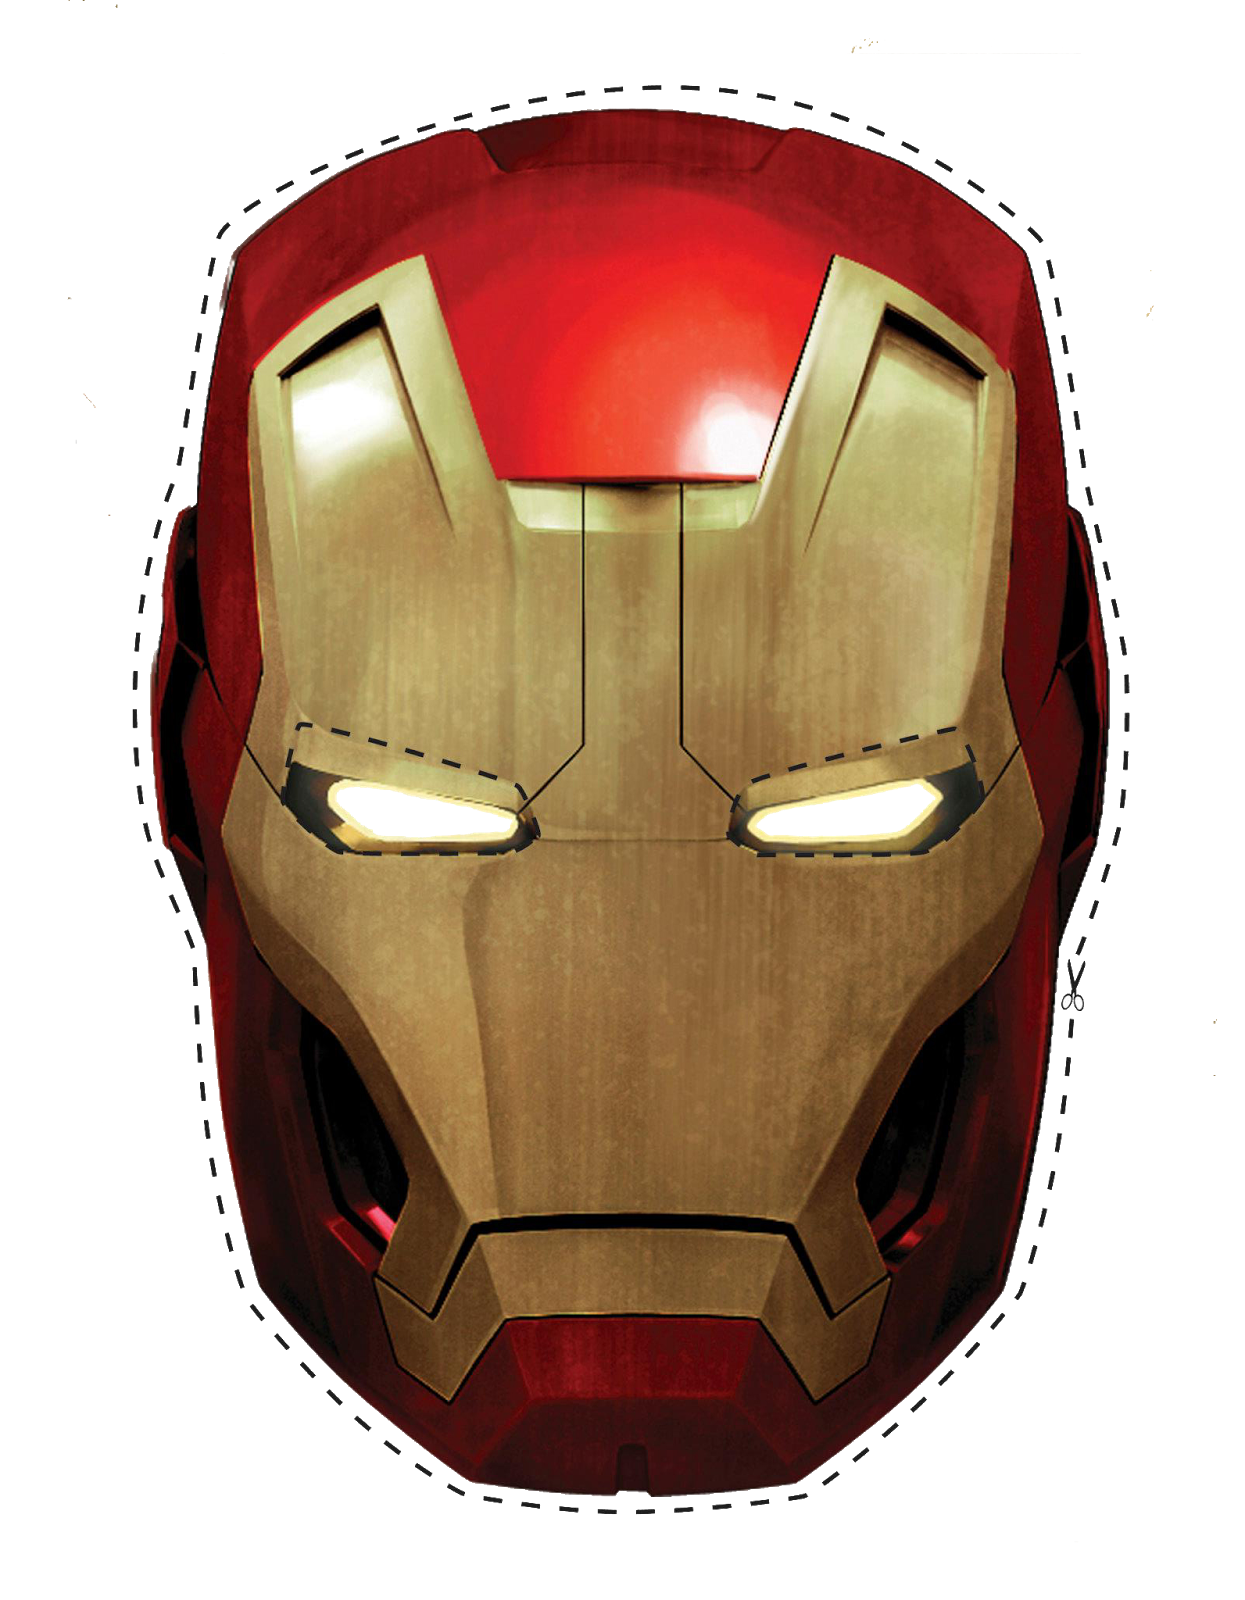 Free Printable Iron Man Mask Oh My Fiesta For Geeks In 2020 Iron Man Birthday Iron Man Mask Iron Man Party